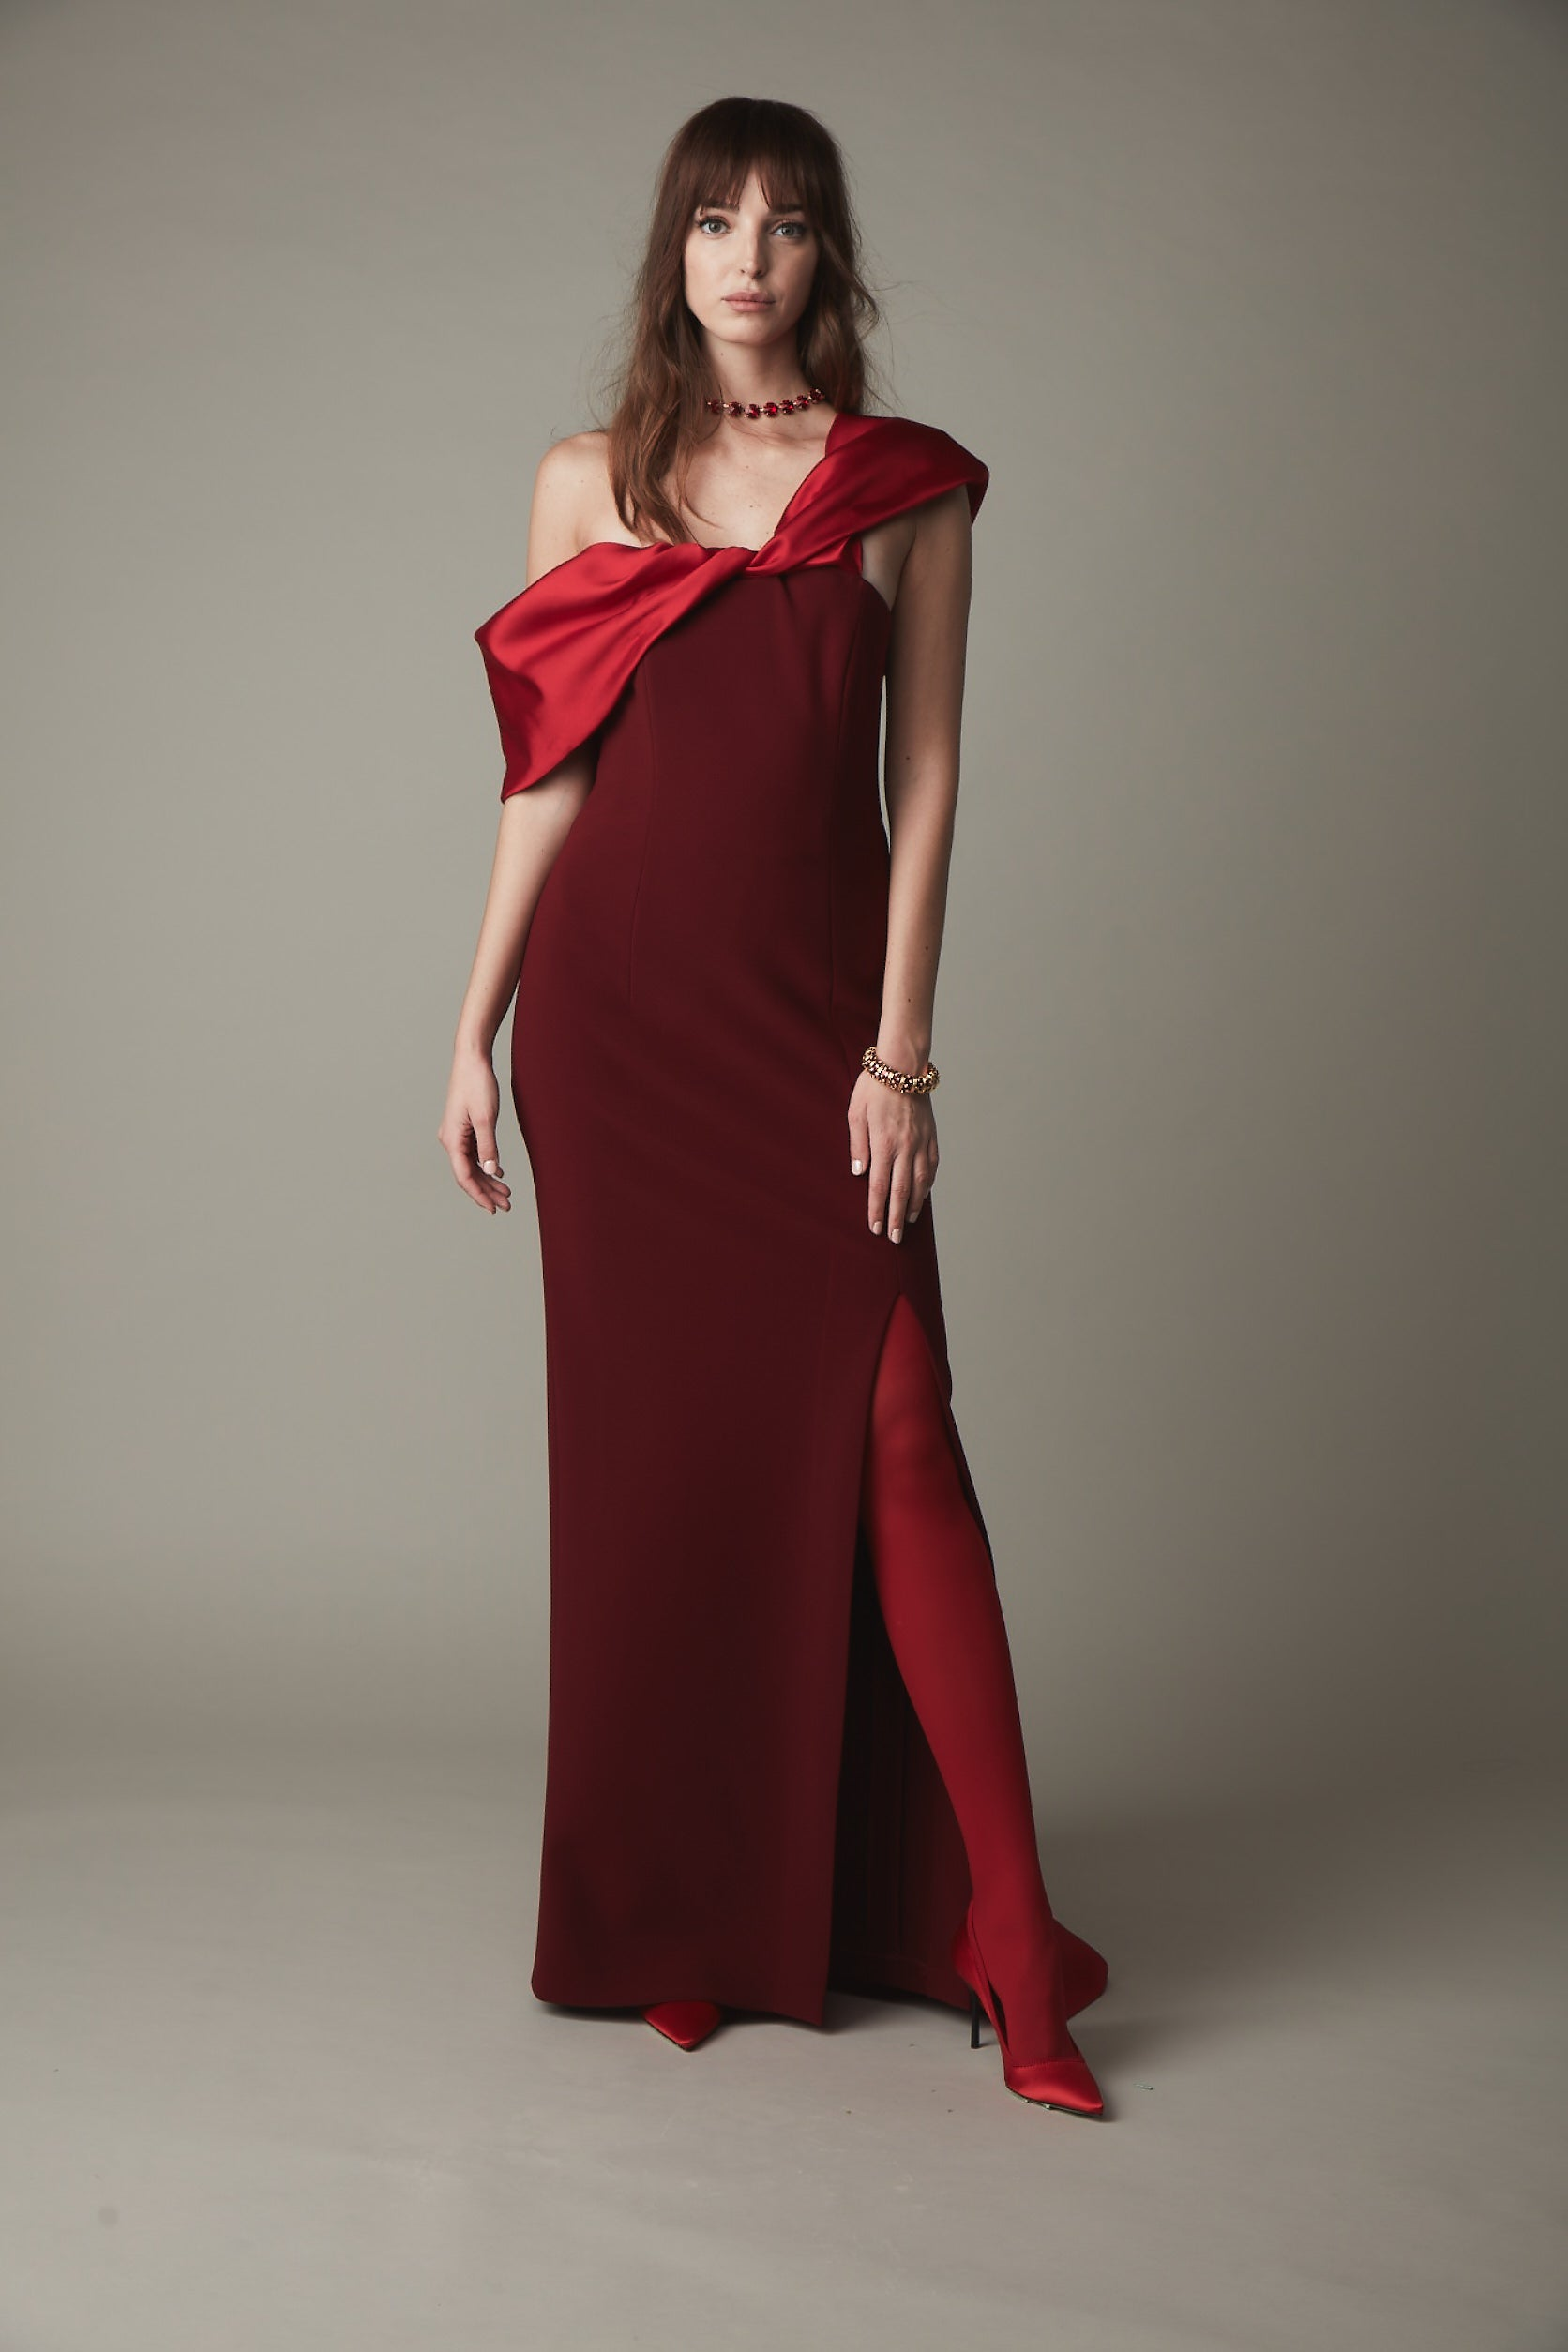 Off the Shoulder Gown with Detachable Train - Bordeaux